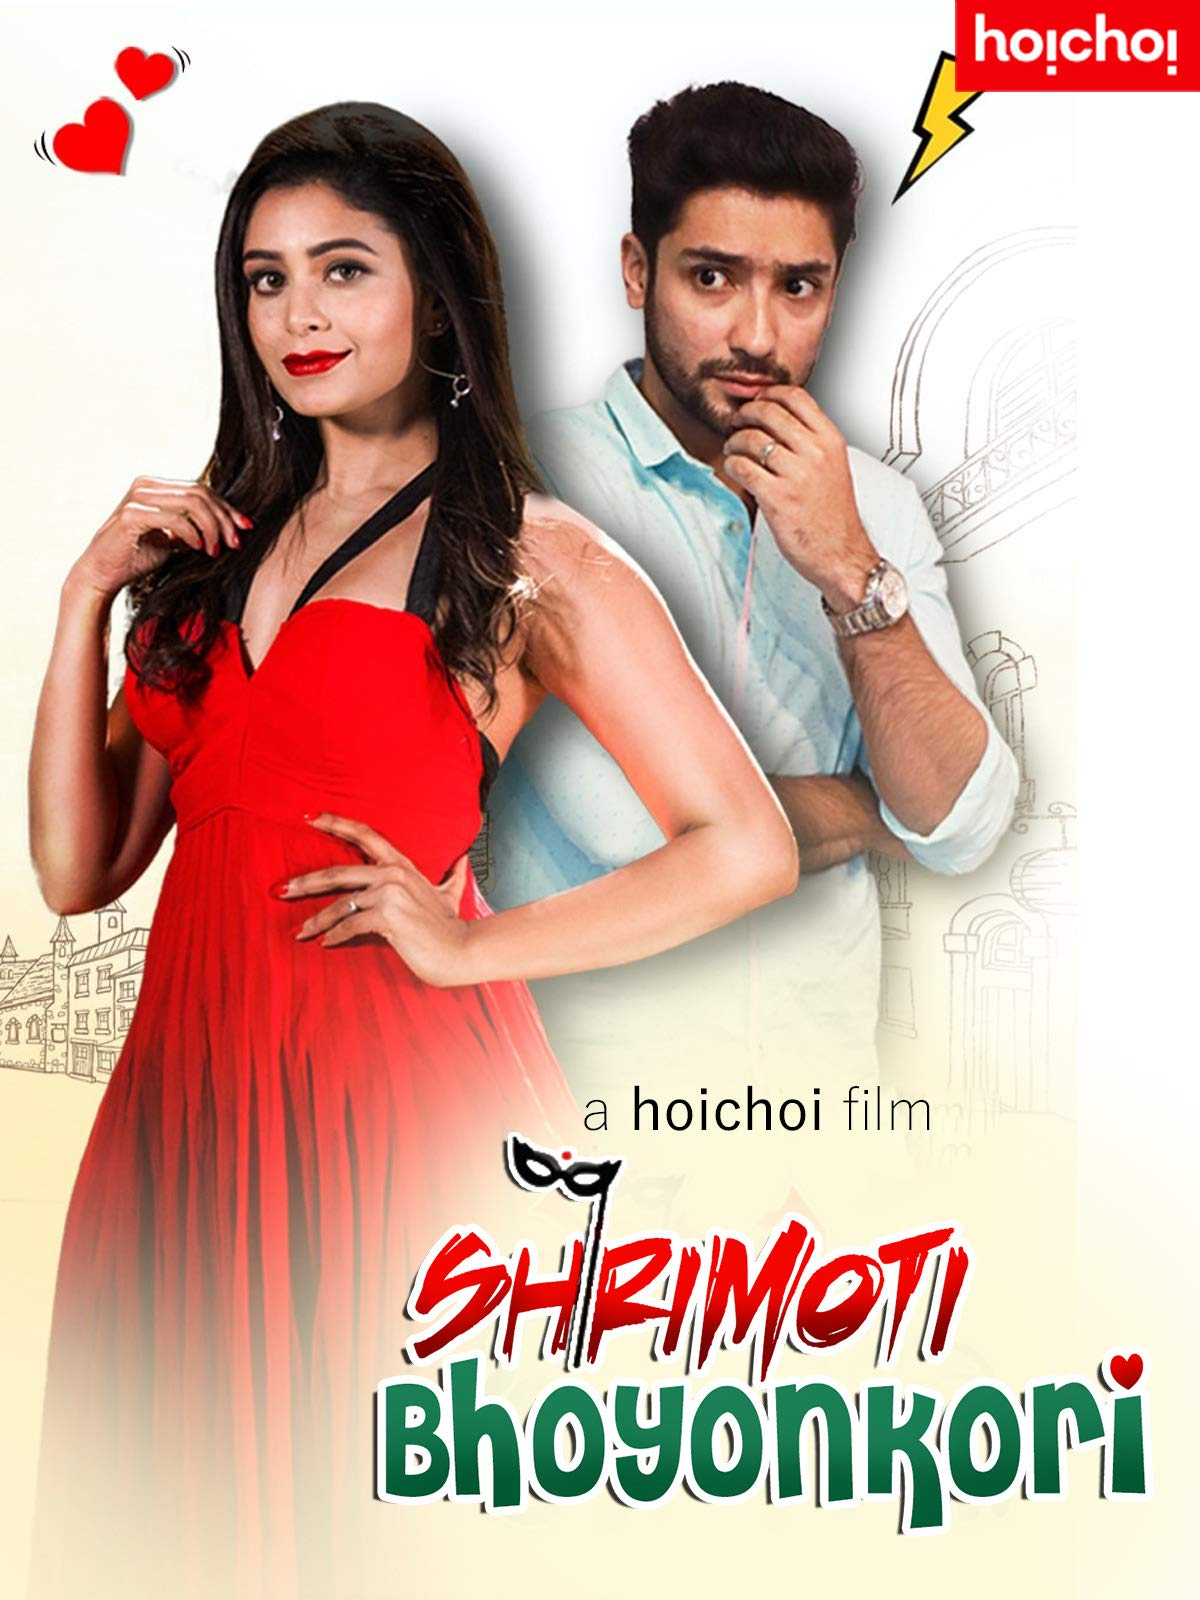 Shrimoti Bhoyonkori (2018) Bengali WEB-DL - 480P | 720P - x264 - 150MB | 500MB - Download & Watch Online  Movie Poster - mlsbd